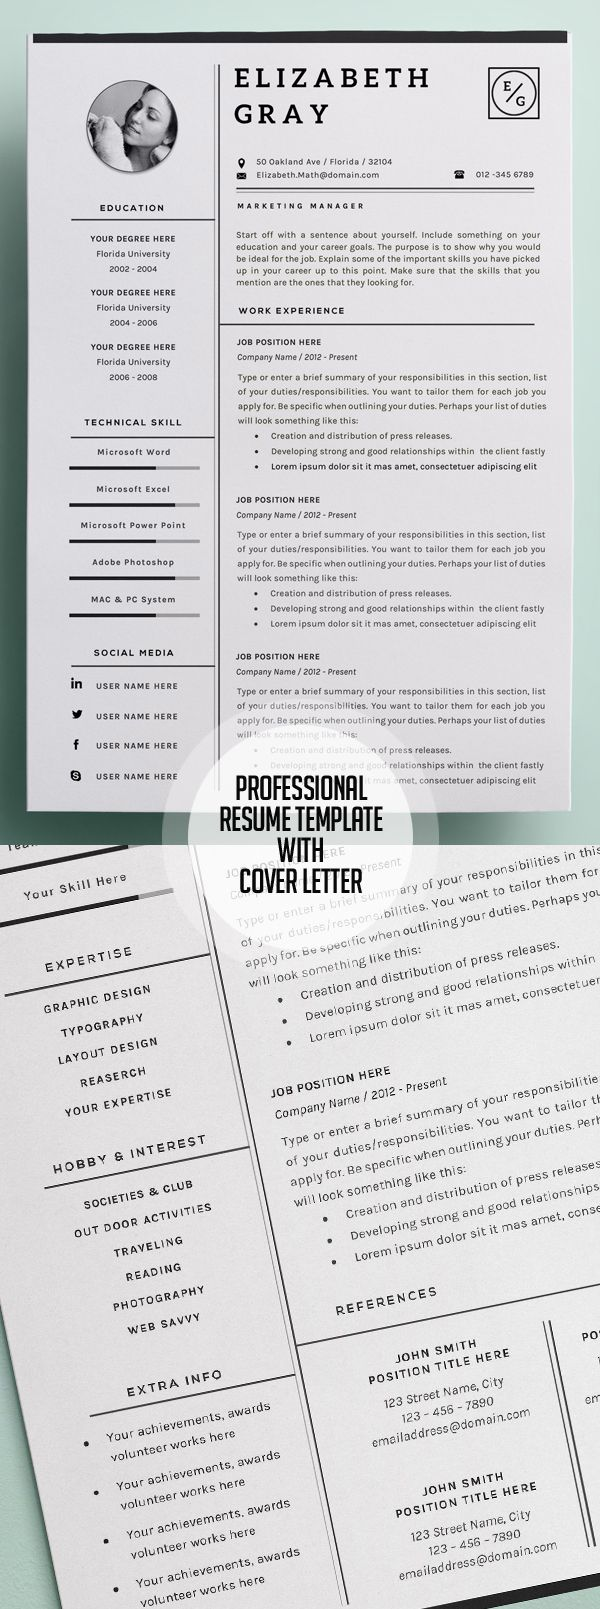 Opposenewapstandardsus  Pleasant  Resume Ideas On Pinterest  Resume Resume Templates And  With Interesting Professional And Modern Resume Template With Page Cover Cvtemplate With Amusing Action Verbs Resume Also What Is A Chronological Resume In Addition Student Resumes And Example Objective For Resume As Well As Teacher Resume Objective Additionally How To Write A Summary For A Resume From Pinterestcom With Opposenewapstandardsus  Interesting  Resume Ideas On Pinterest  Resume Resume Templates And  With Amusing Professional And Modern Resume Template With Page Cover Cvtemplate And Pleasant Action Verbs Resume Also What Is A Chronological Resume In Addition Student Resumes From Pinterestcom